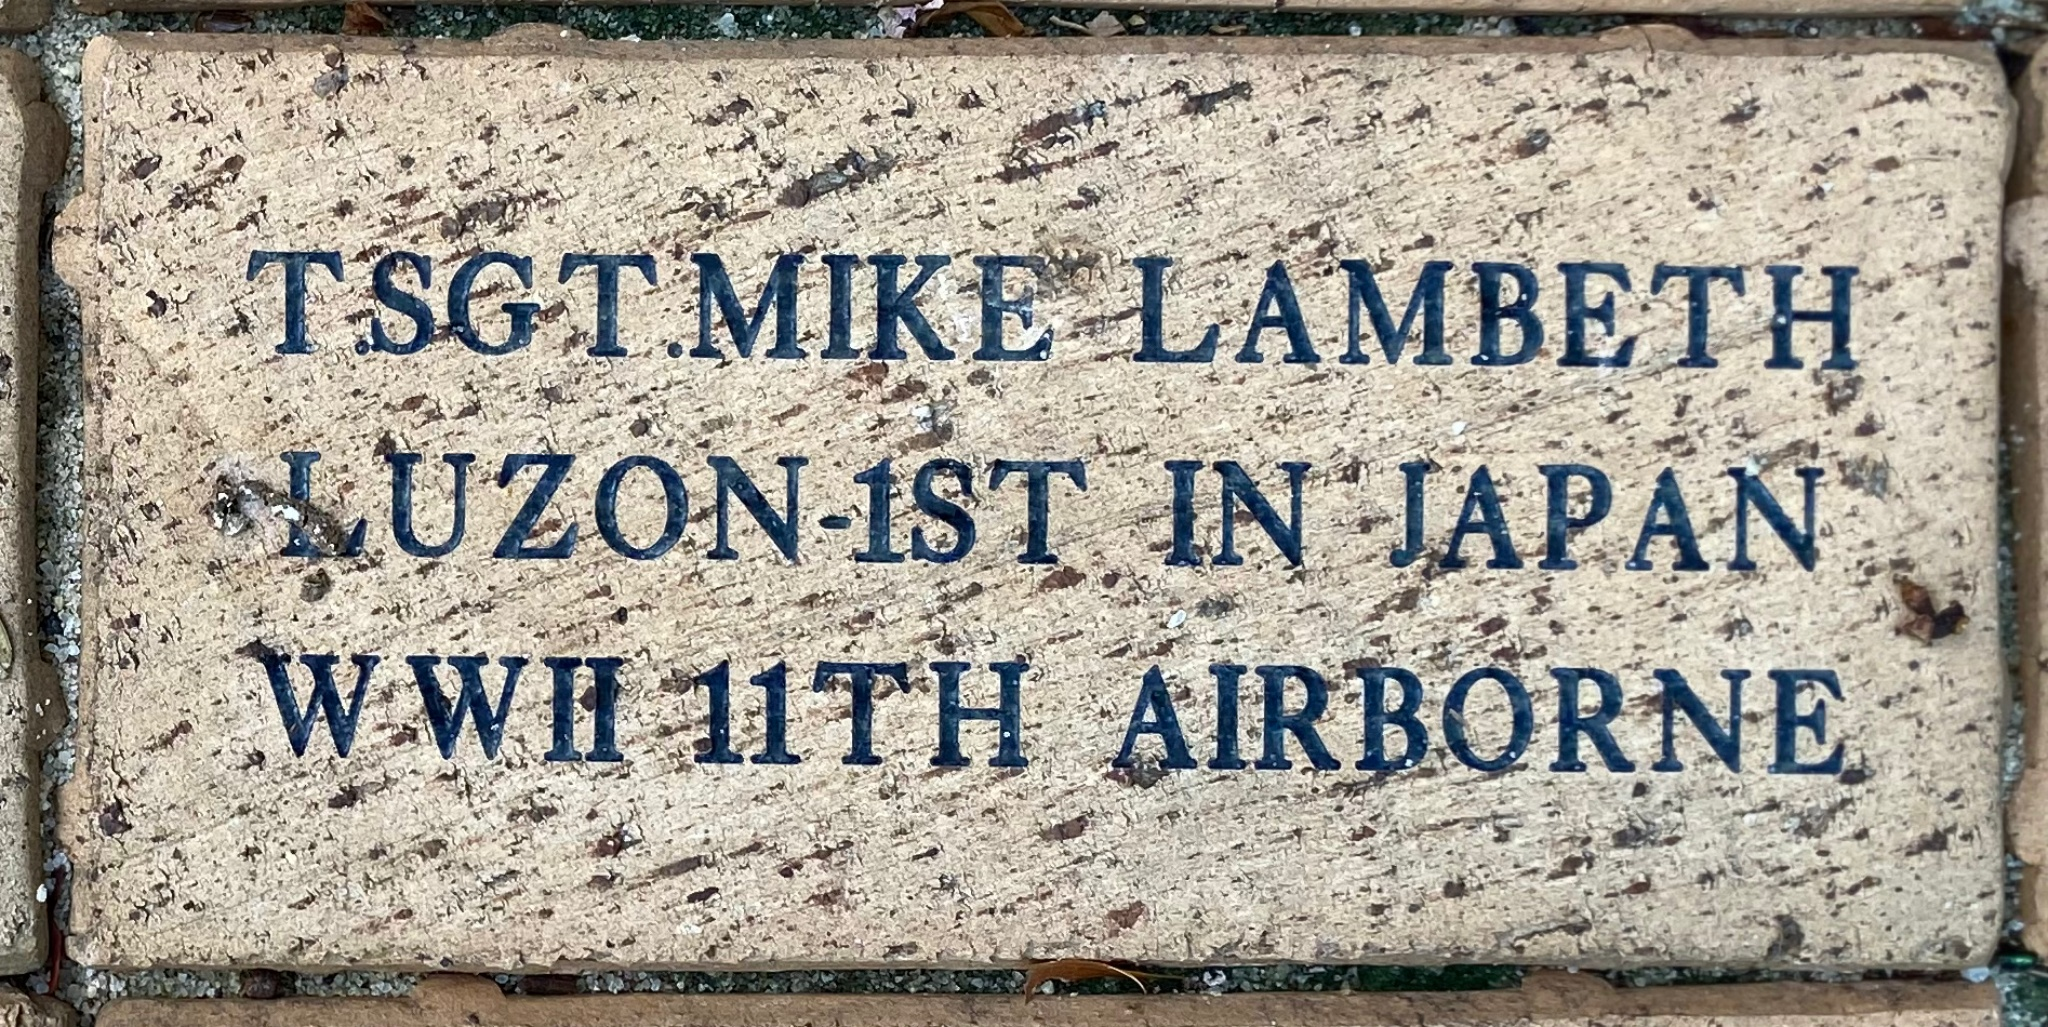 T.SGT. MIKE LAMBETH LUZON 1ST IN JAPAN WWII 11TH AIRBORNE